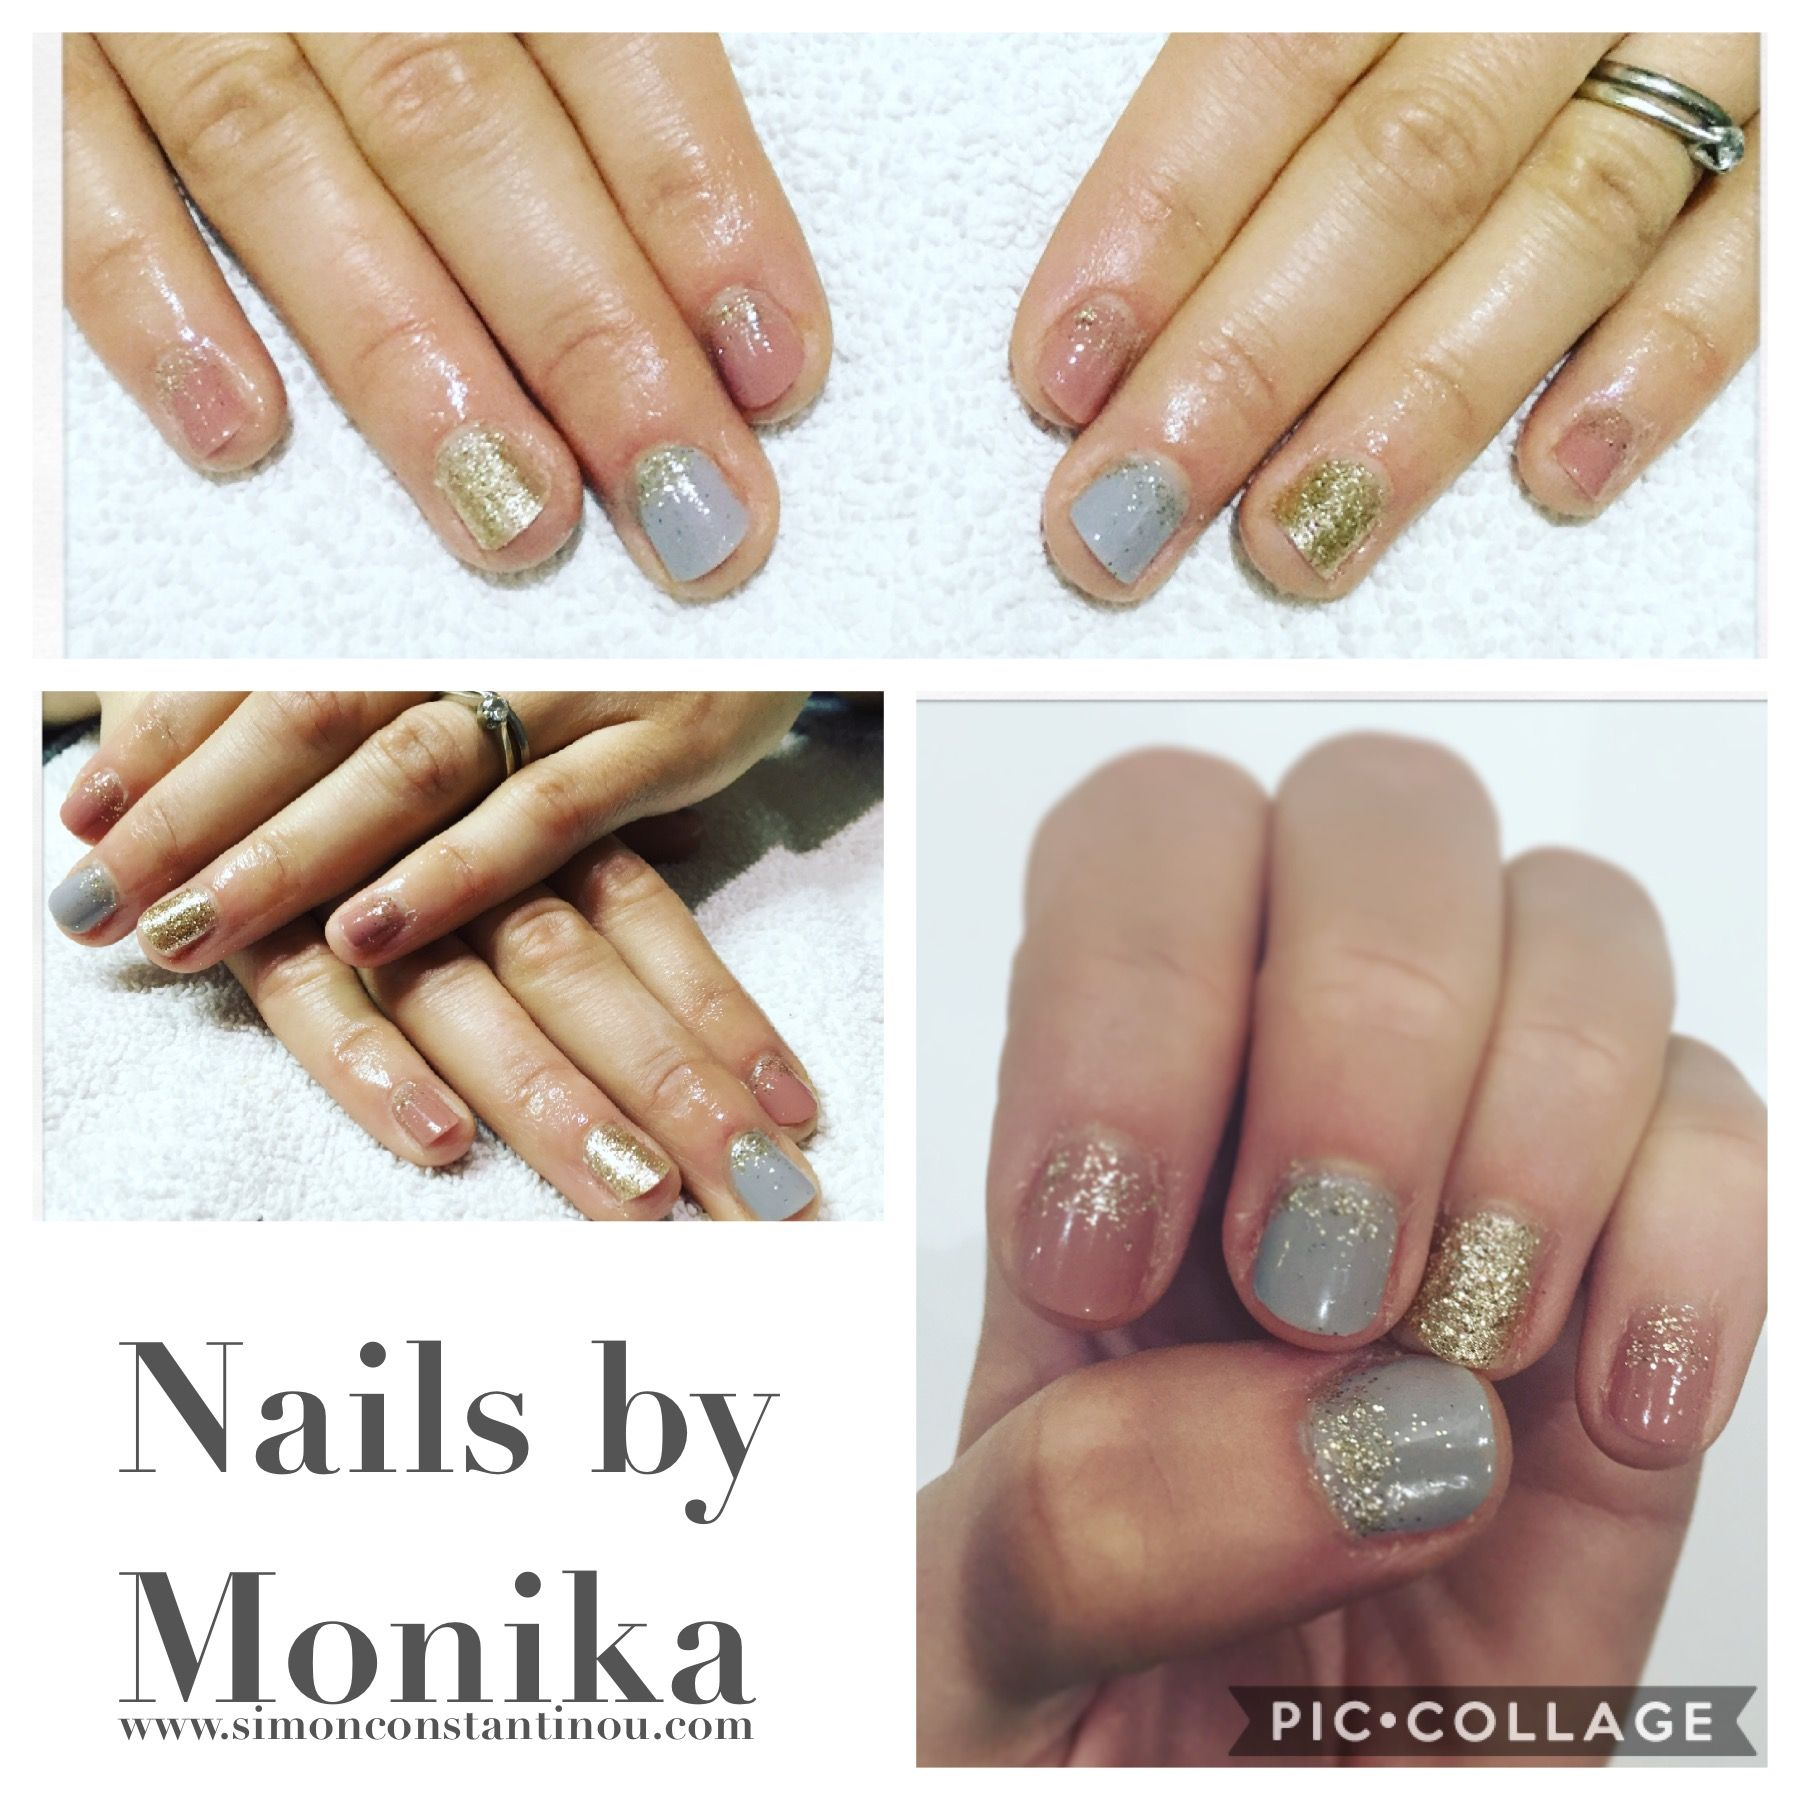 Barbershop Hair And Beauty Prices Cardiff Party Nails Gel Nails Gel Nail Polish